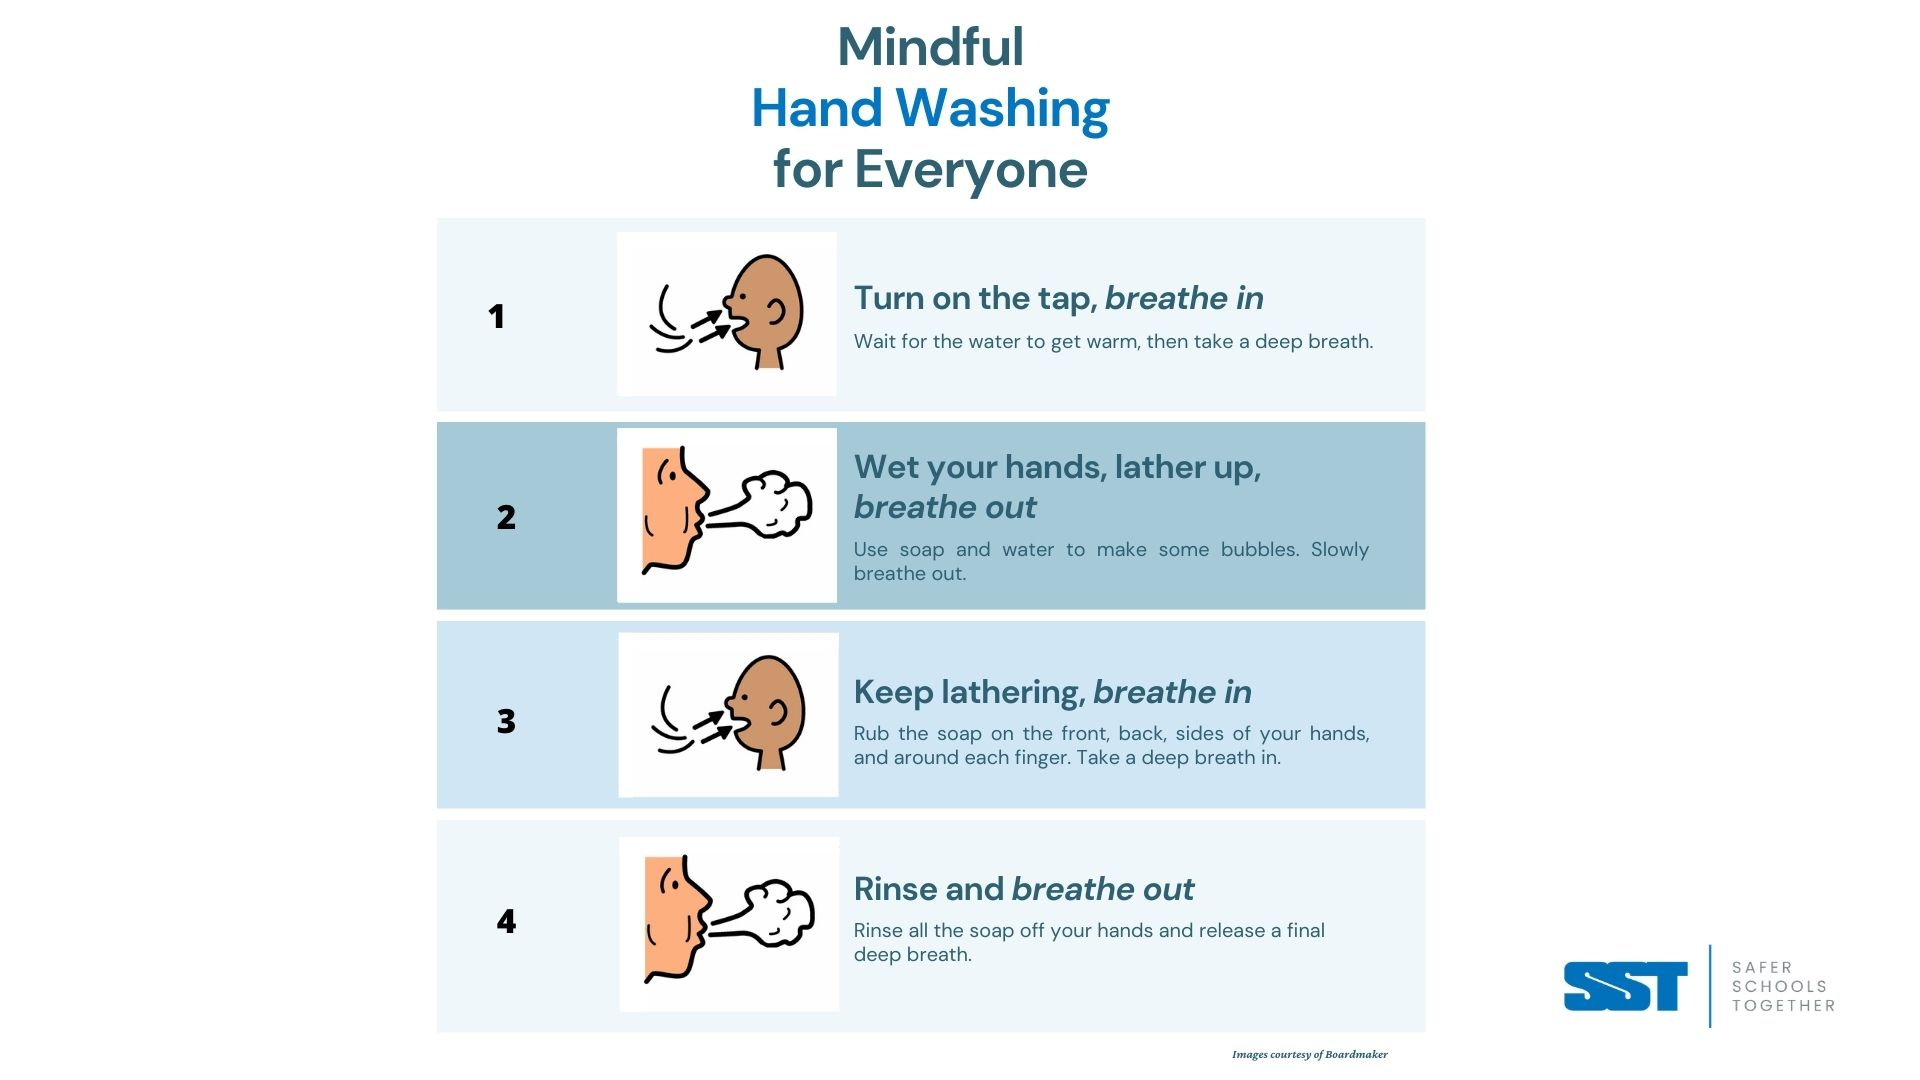 Mindful Hand Washing image